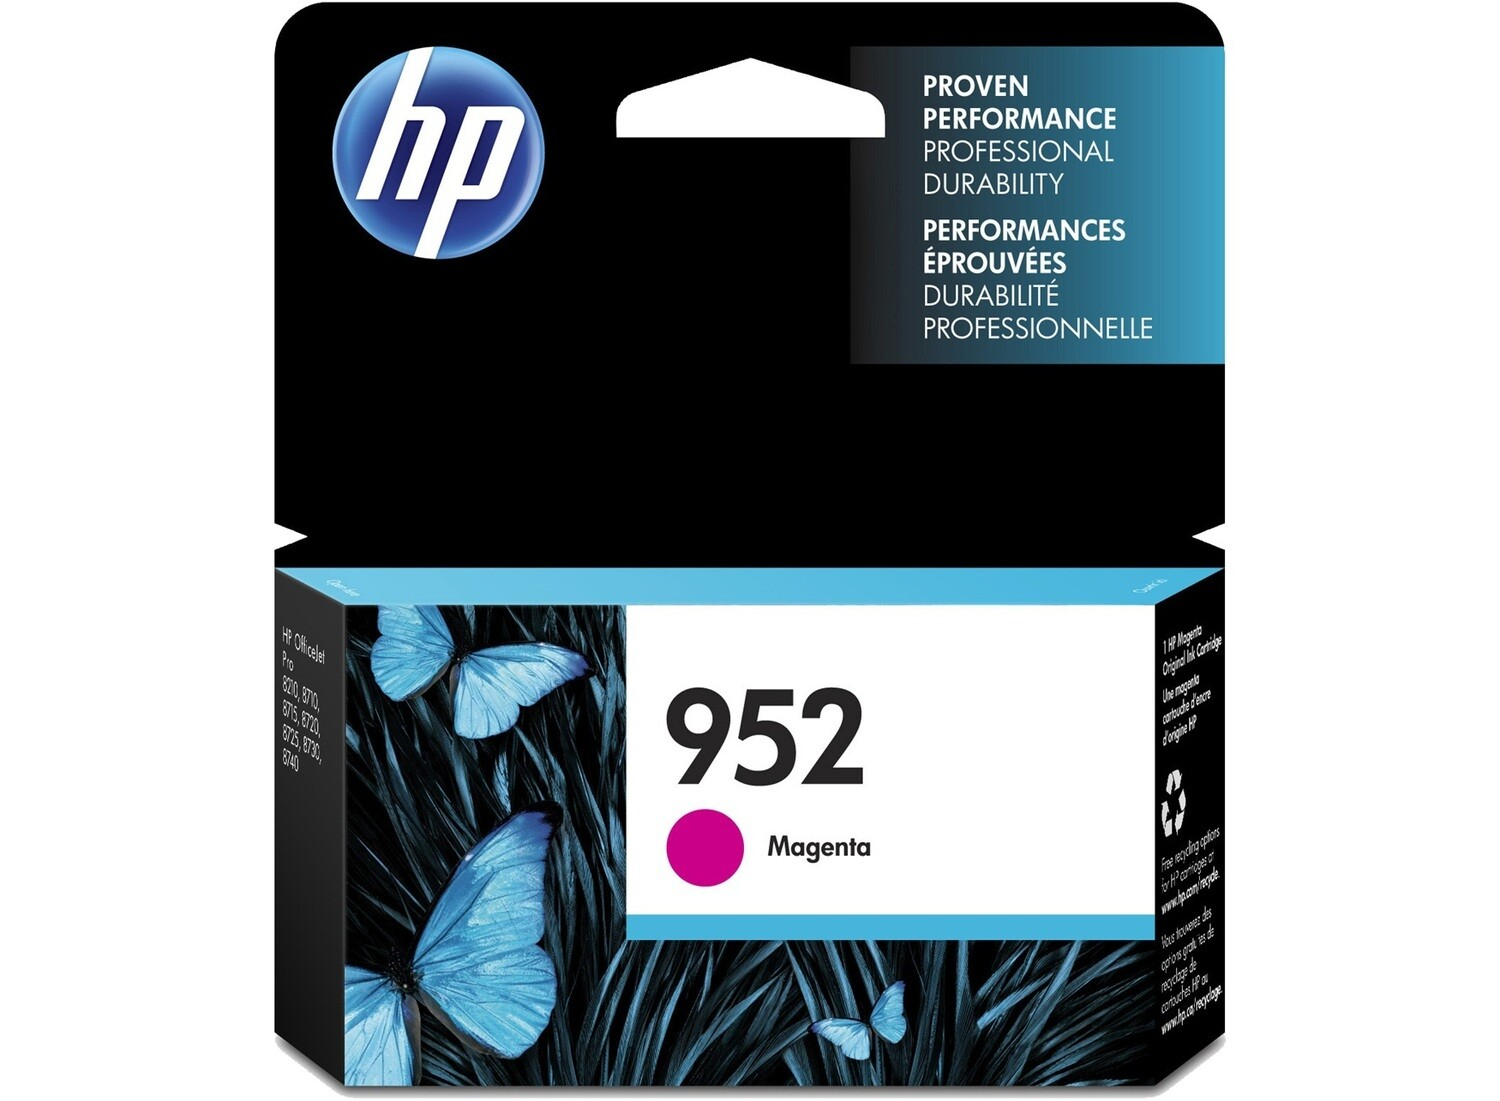 HP / 952 Magenta Original Ink Cartridge